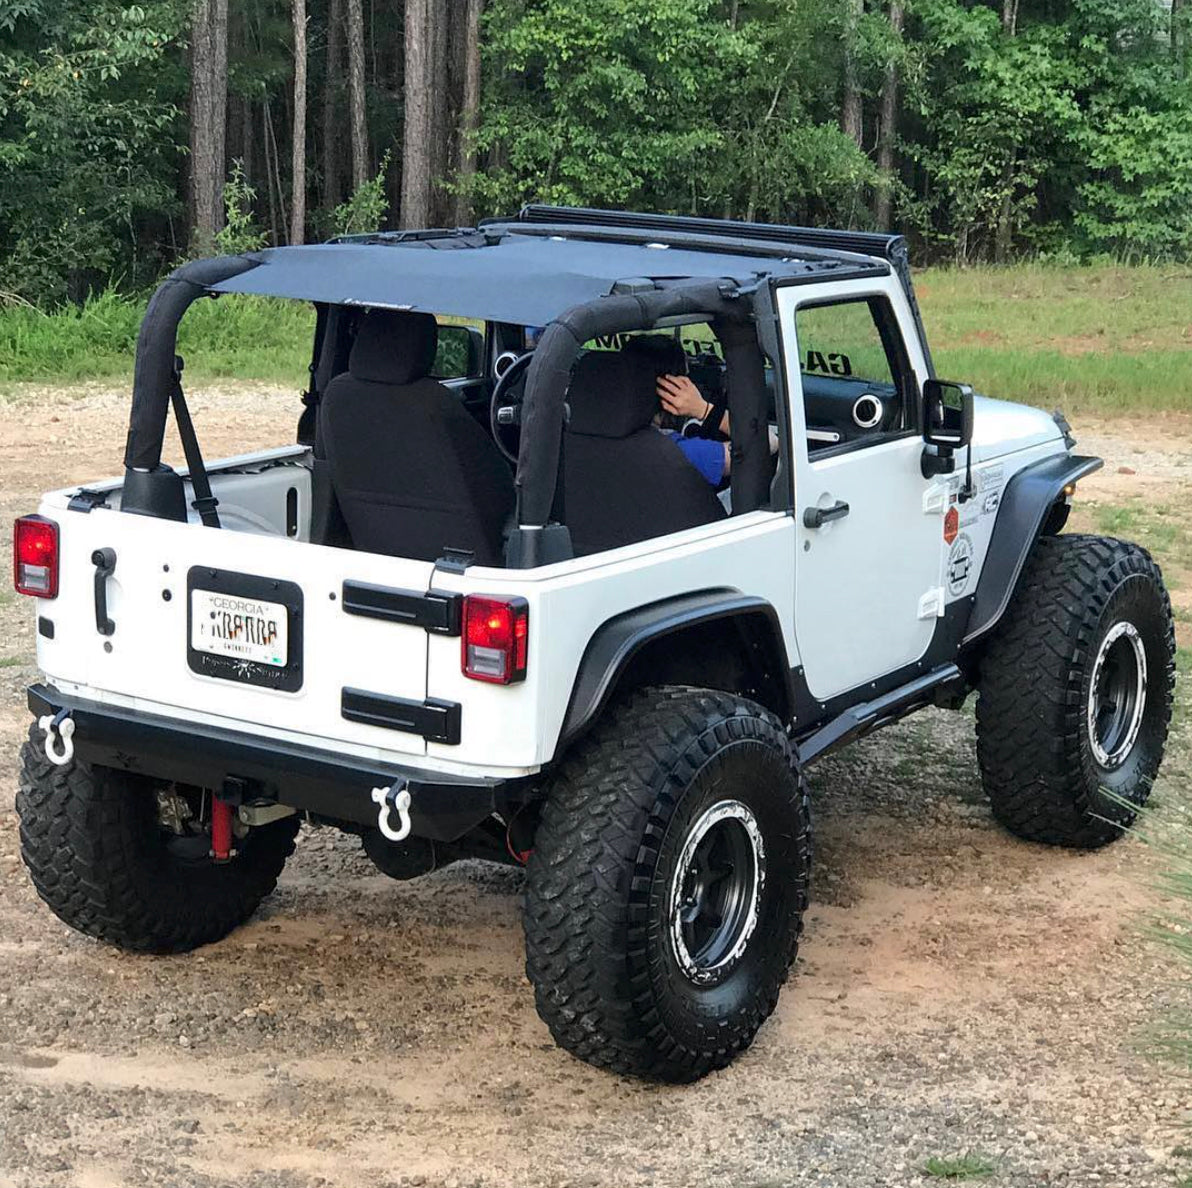 Marvelous Alien Sunshade Jeep Wrangler JKFB Sun Shade Mesh Top Covers Front U0026 Rear Of  Your 2 ...